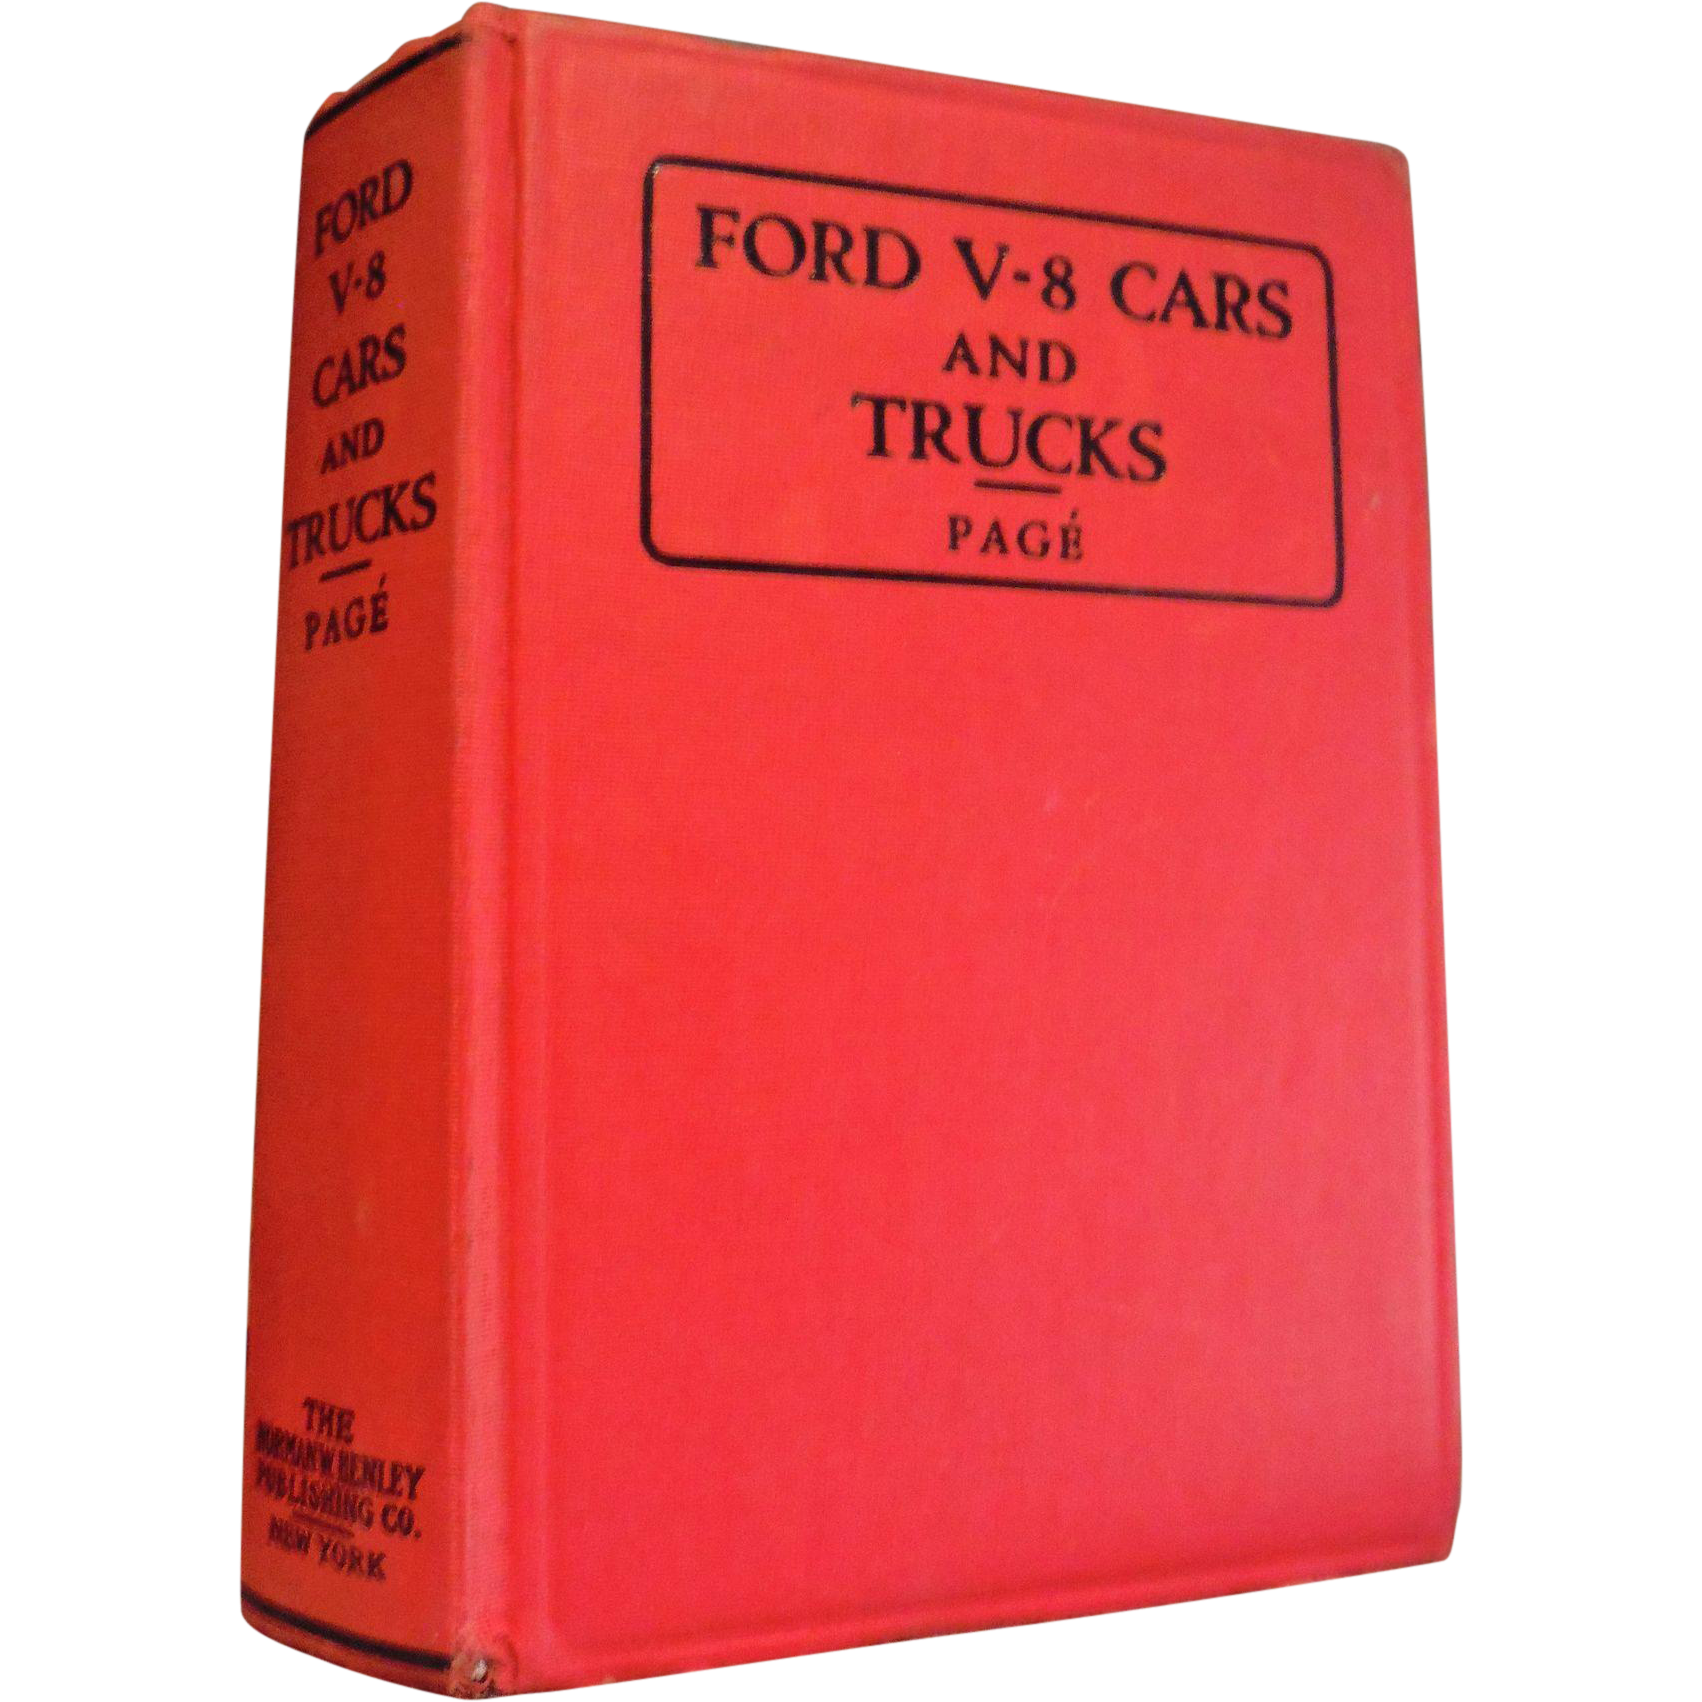 Vintage Book 1947 Ford V8 Cars & Trucks Construction Operation Repair Manual 1932 1933 1934 1935 1936 1937 1938 1939 1940 models